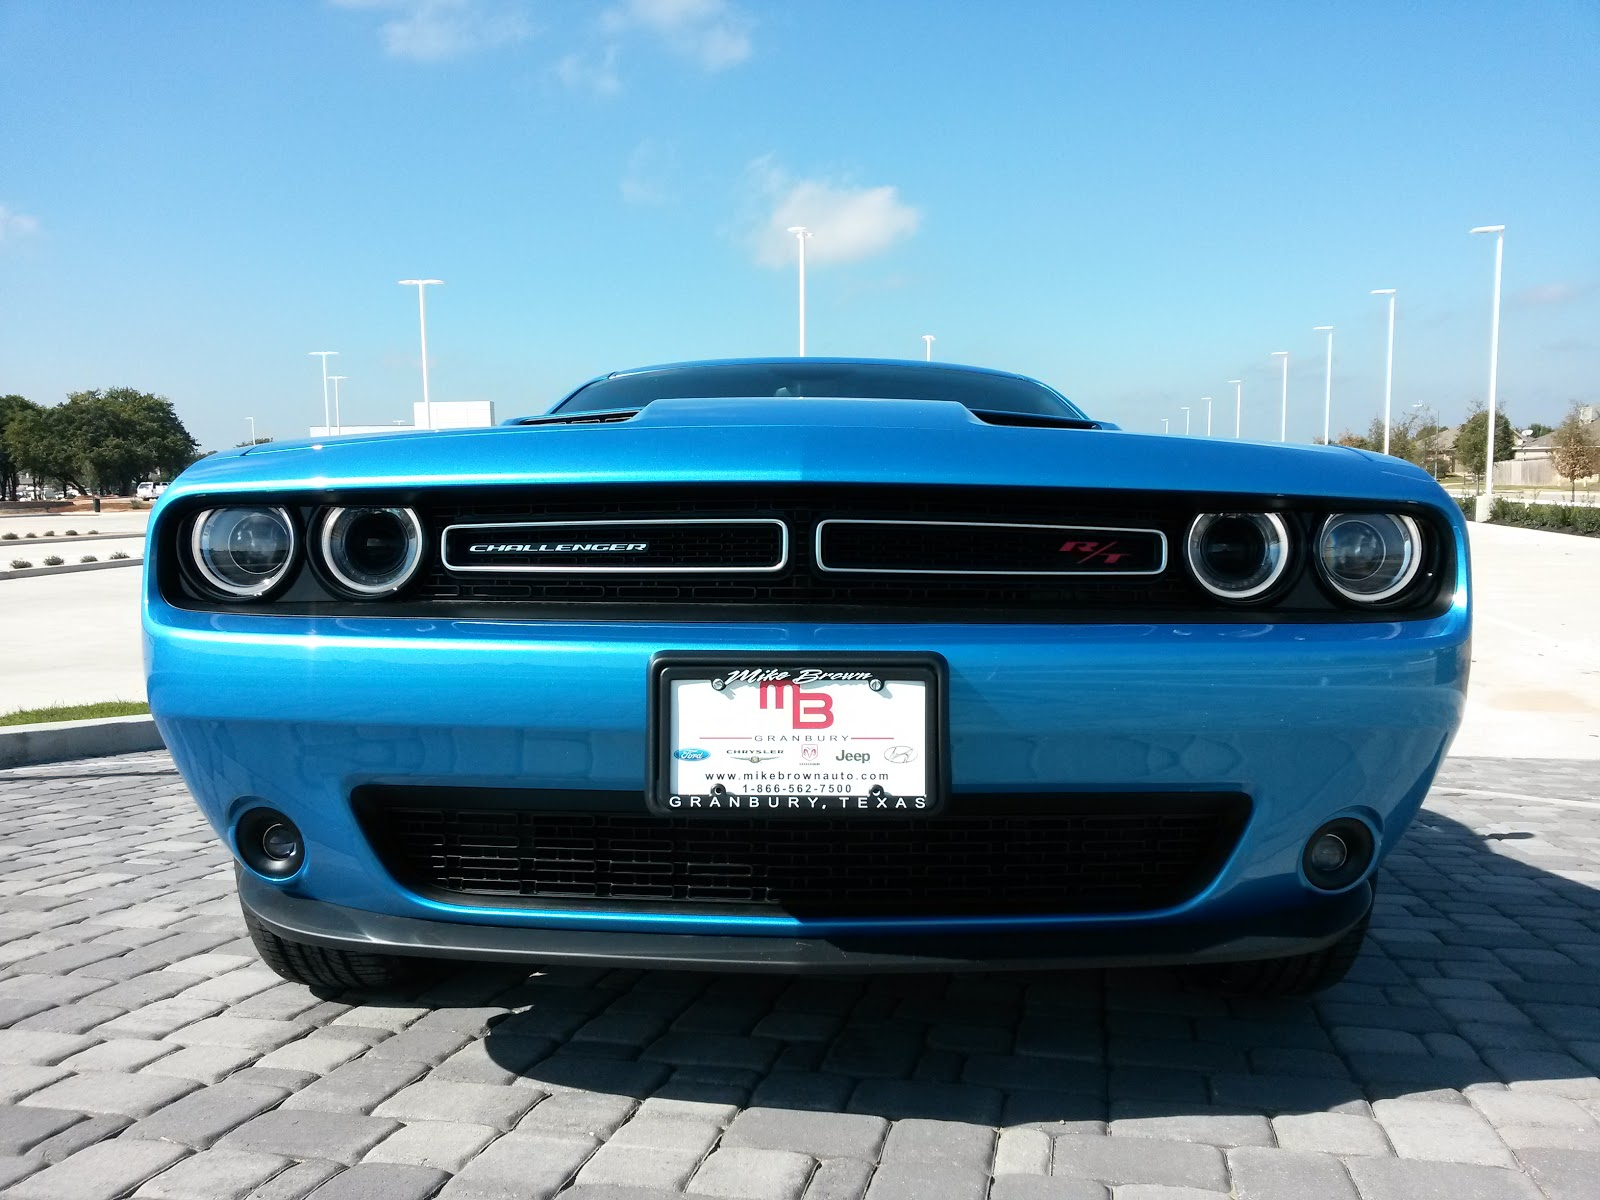 s insurance srt articles second hot want buy it fear detail on your take but front rod the red website dodge a track every to and here demon